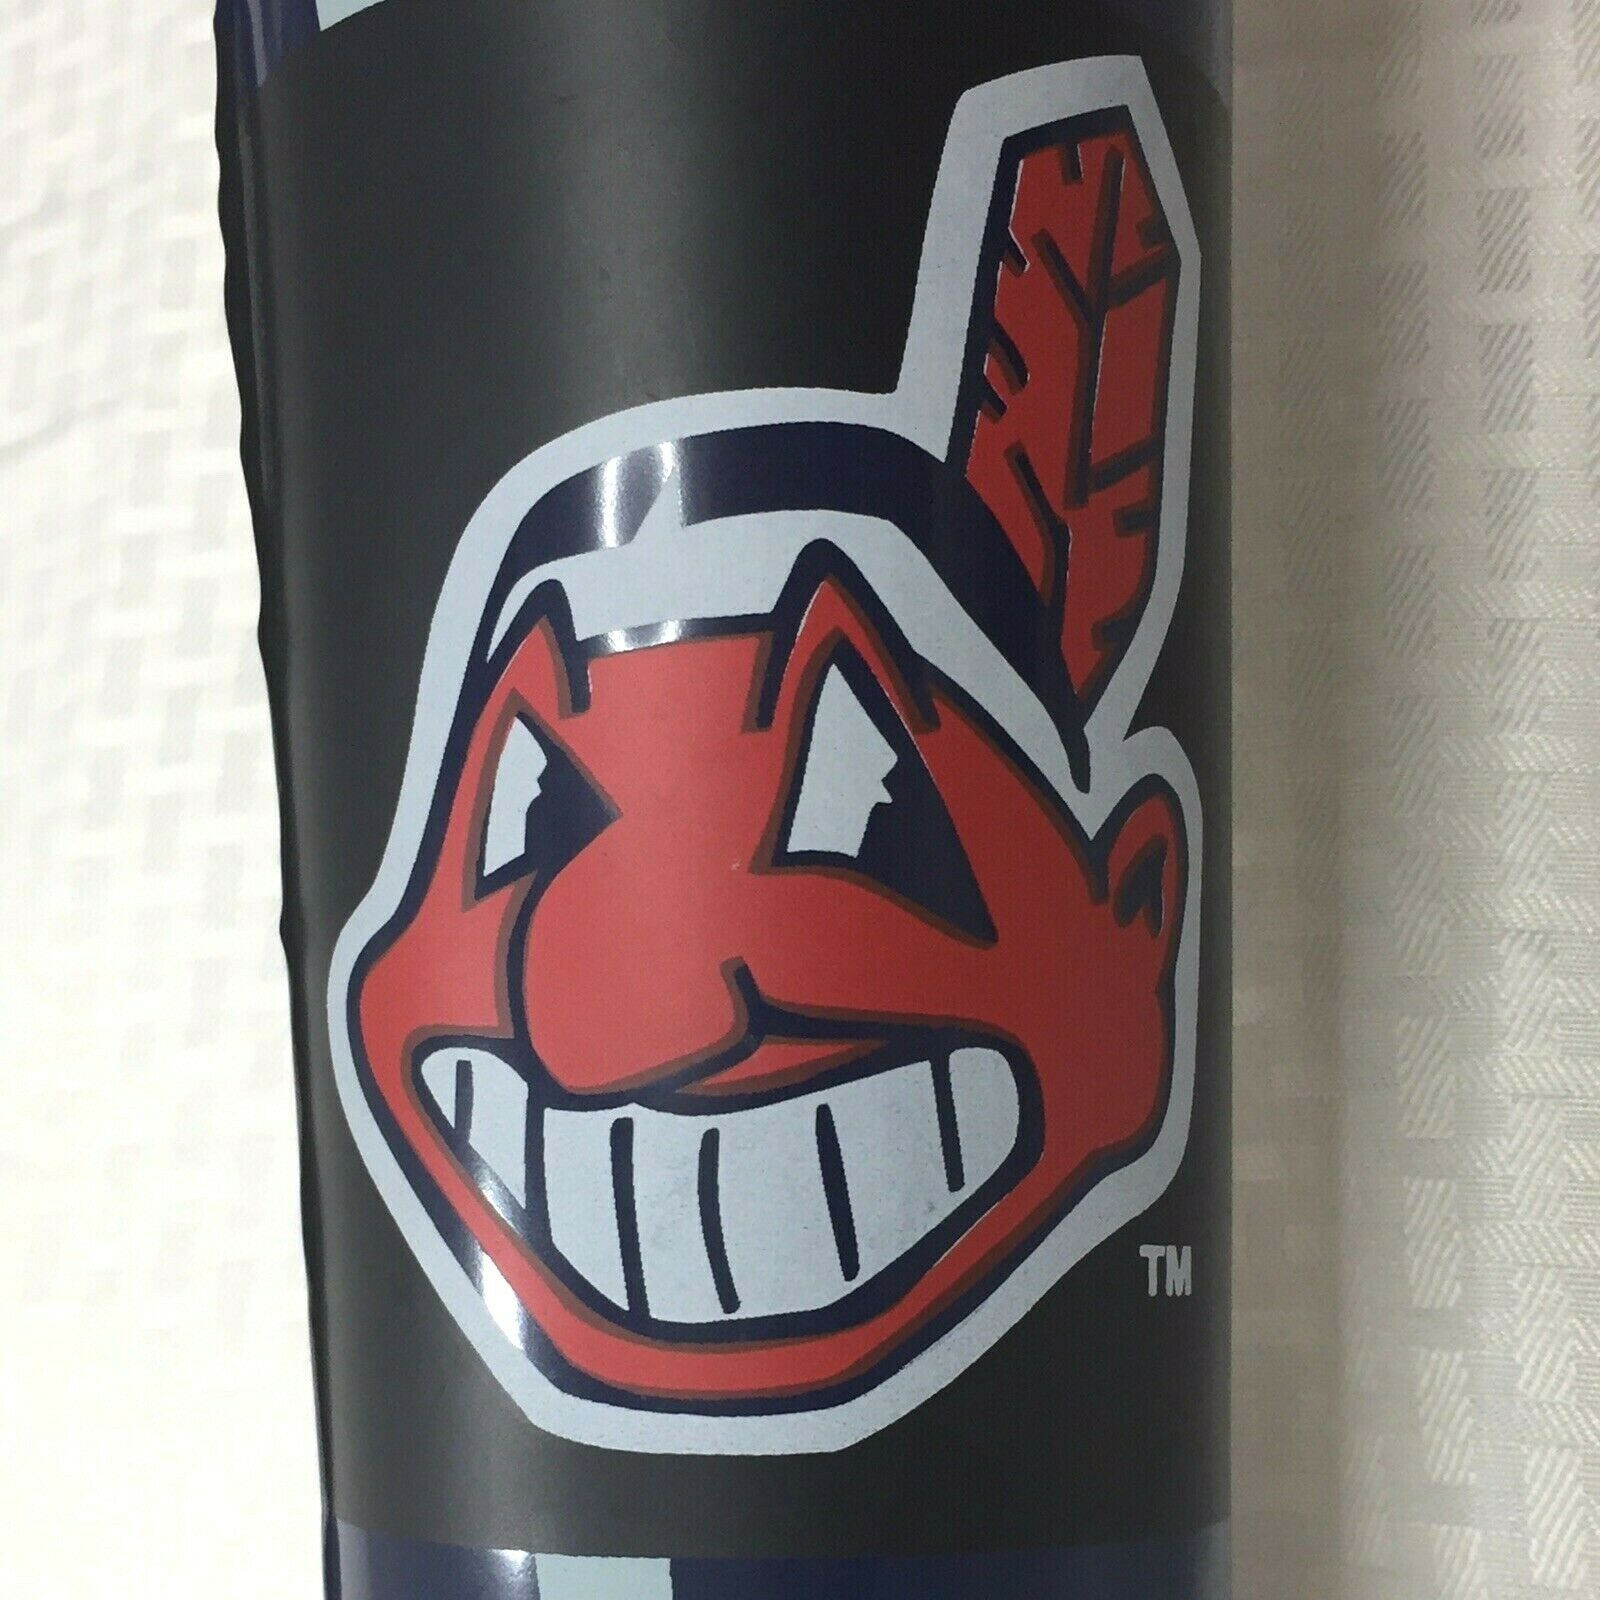 Primary image for Giant Cleveland Indians Inflatable Baseball Bat Chief Wahoo 5 Feet 2002 MLBP